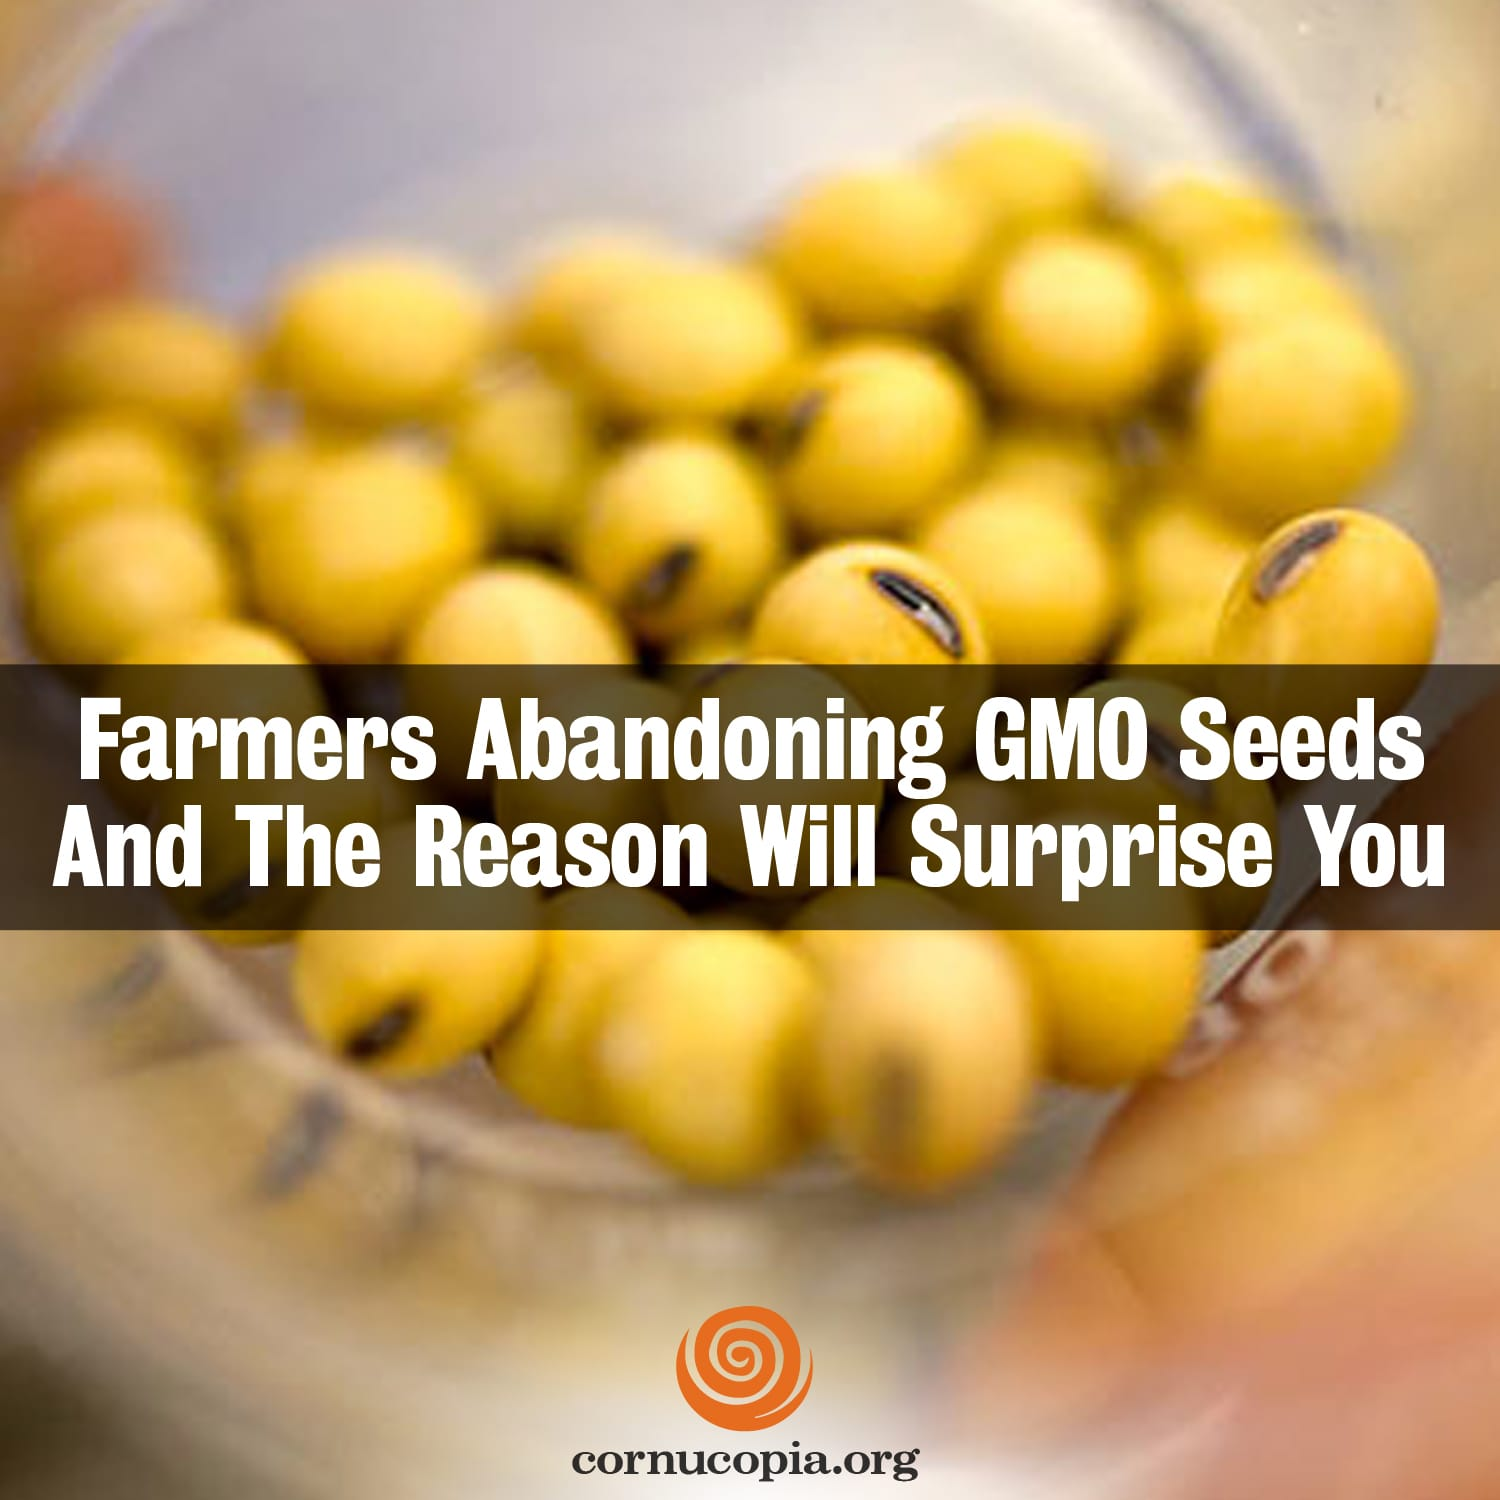 genetically modified seeds vs organic seeds Organic seed should be free of genetically engineered (ge) dna, because  in  response to the threat, the organic seed growers and trade.